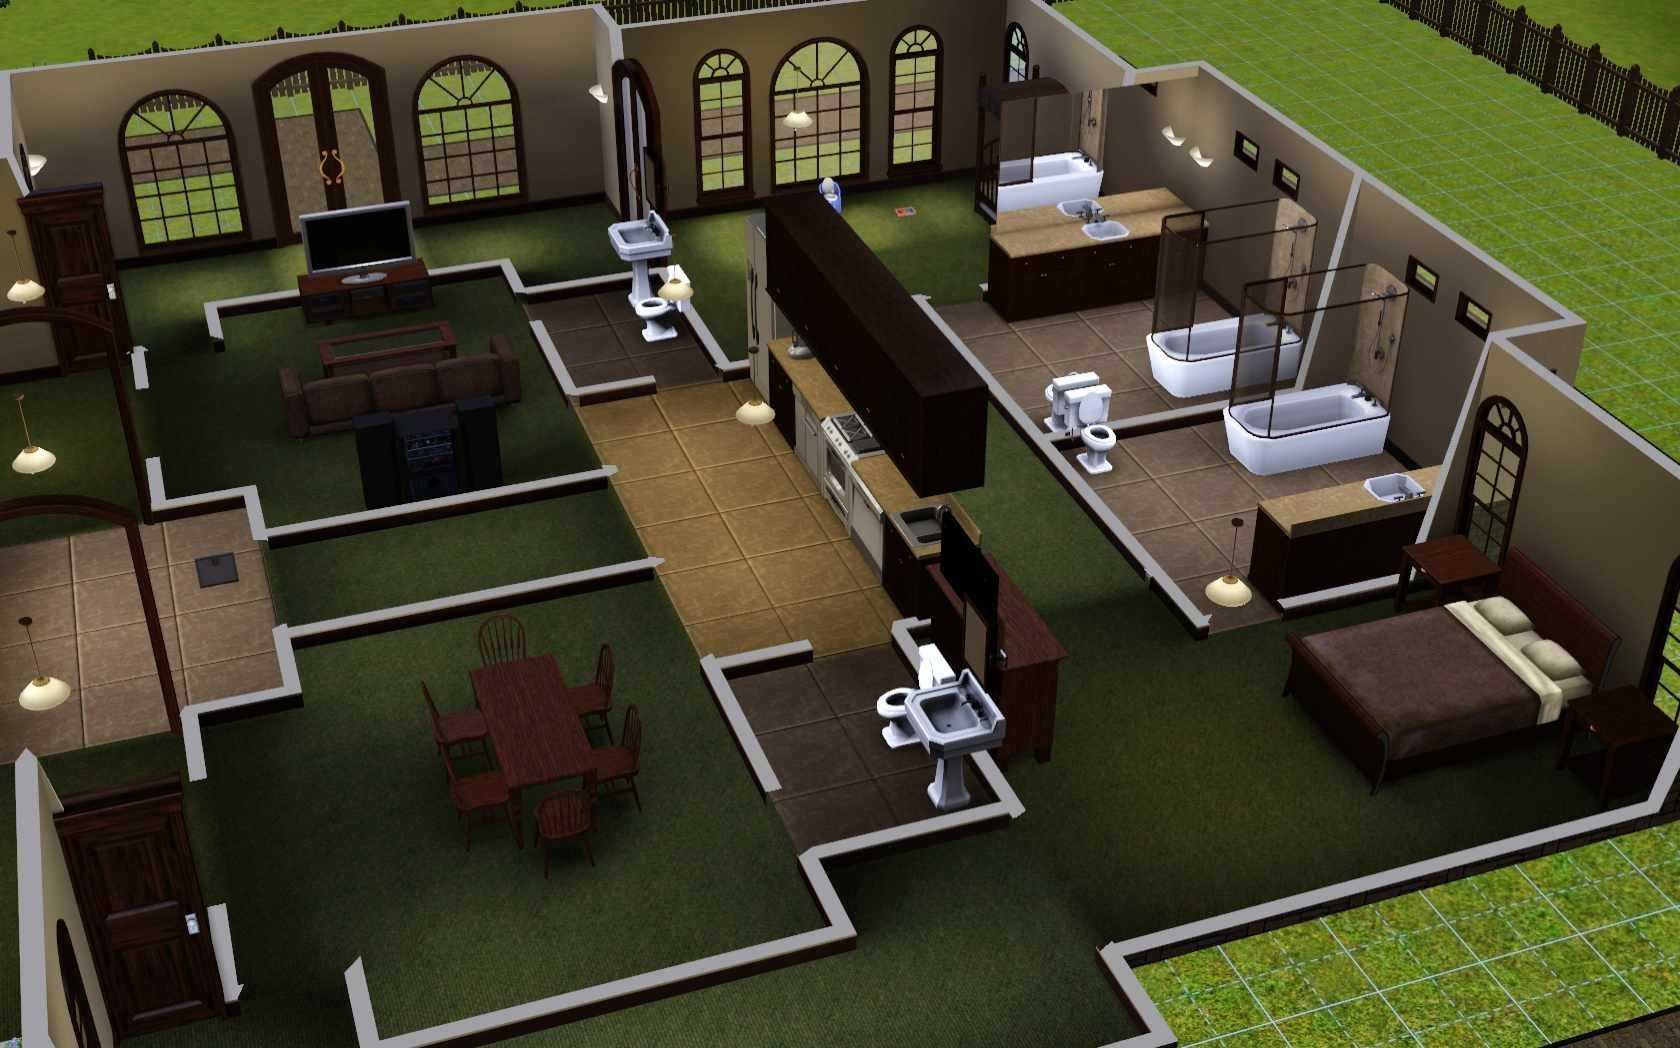 10 Stylish House Ideas For Sims 3 the sims 3 room build ideas and examples 6 2021